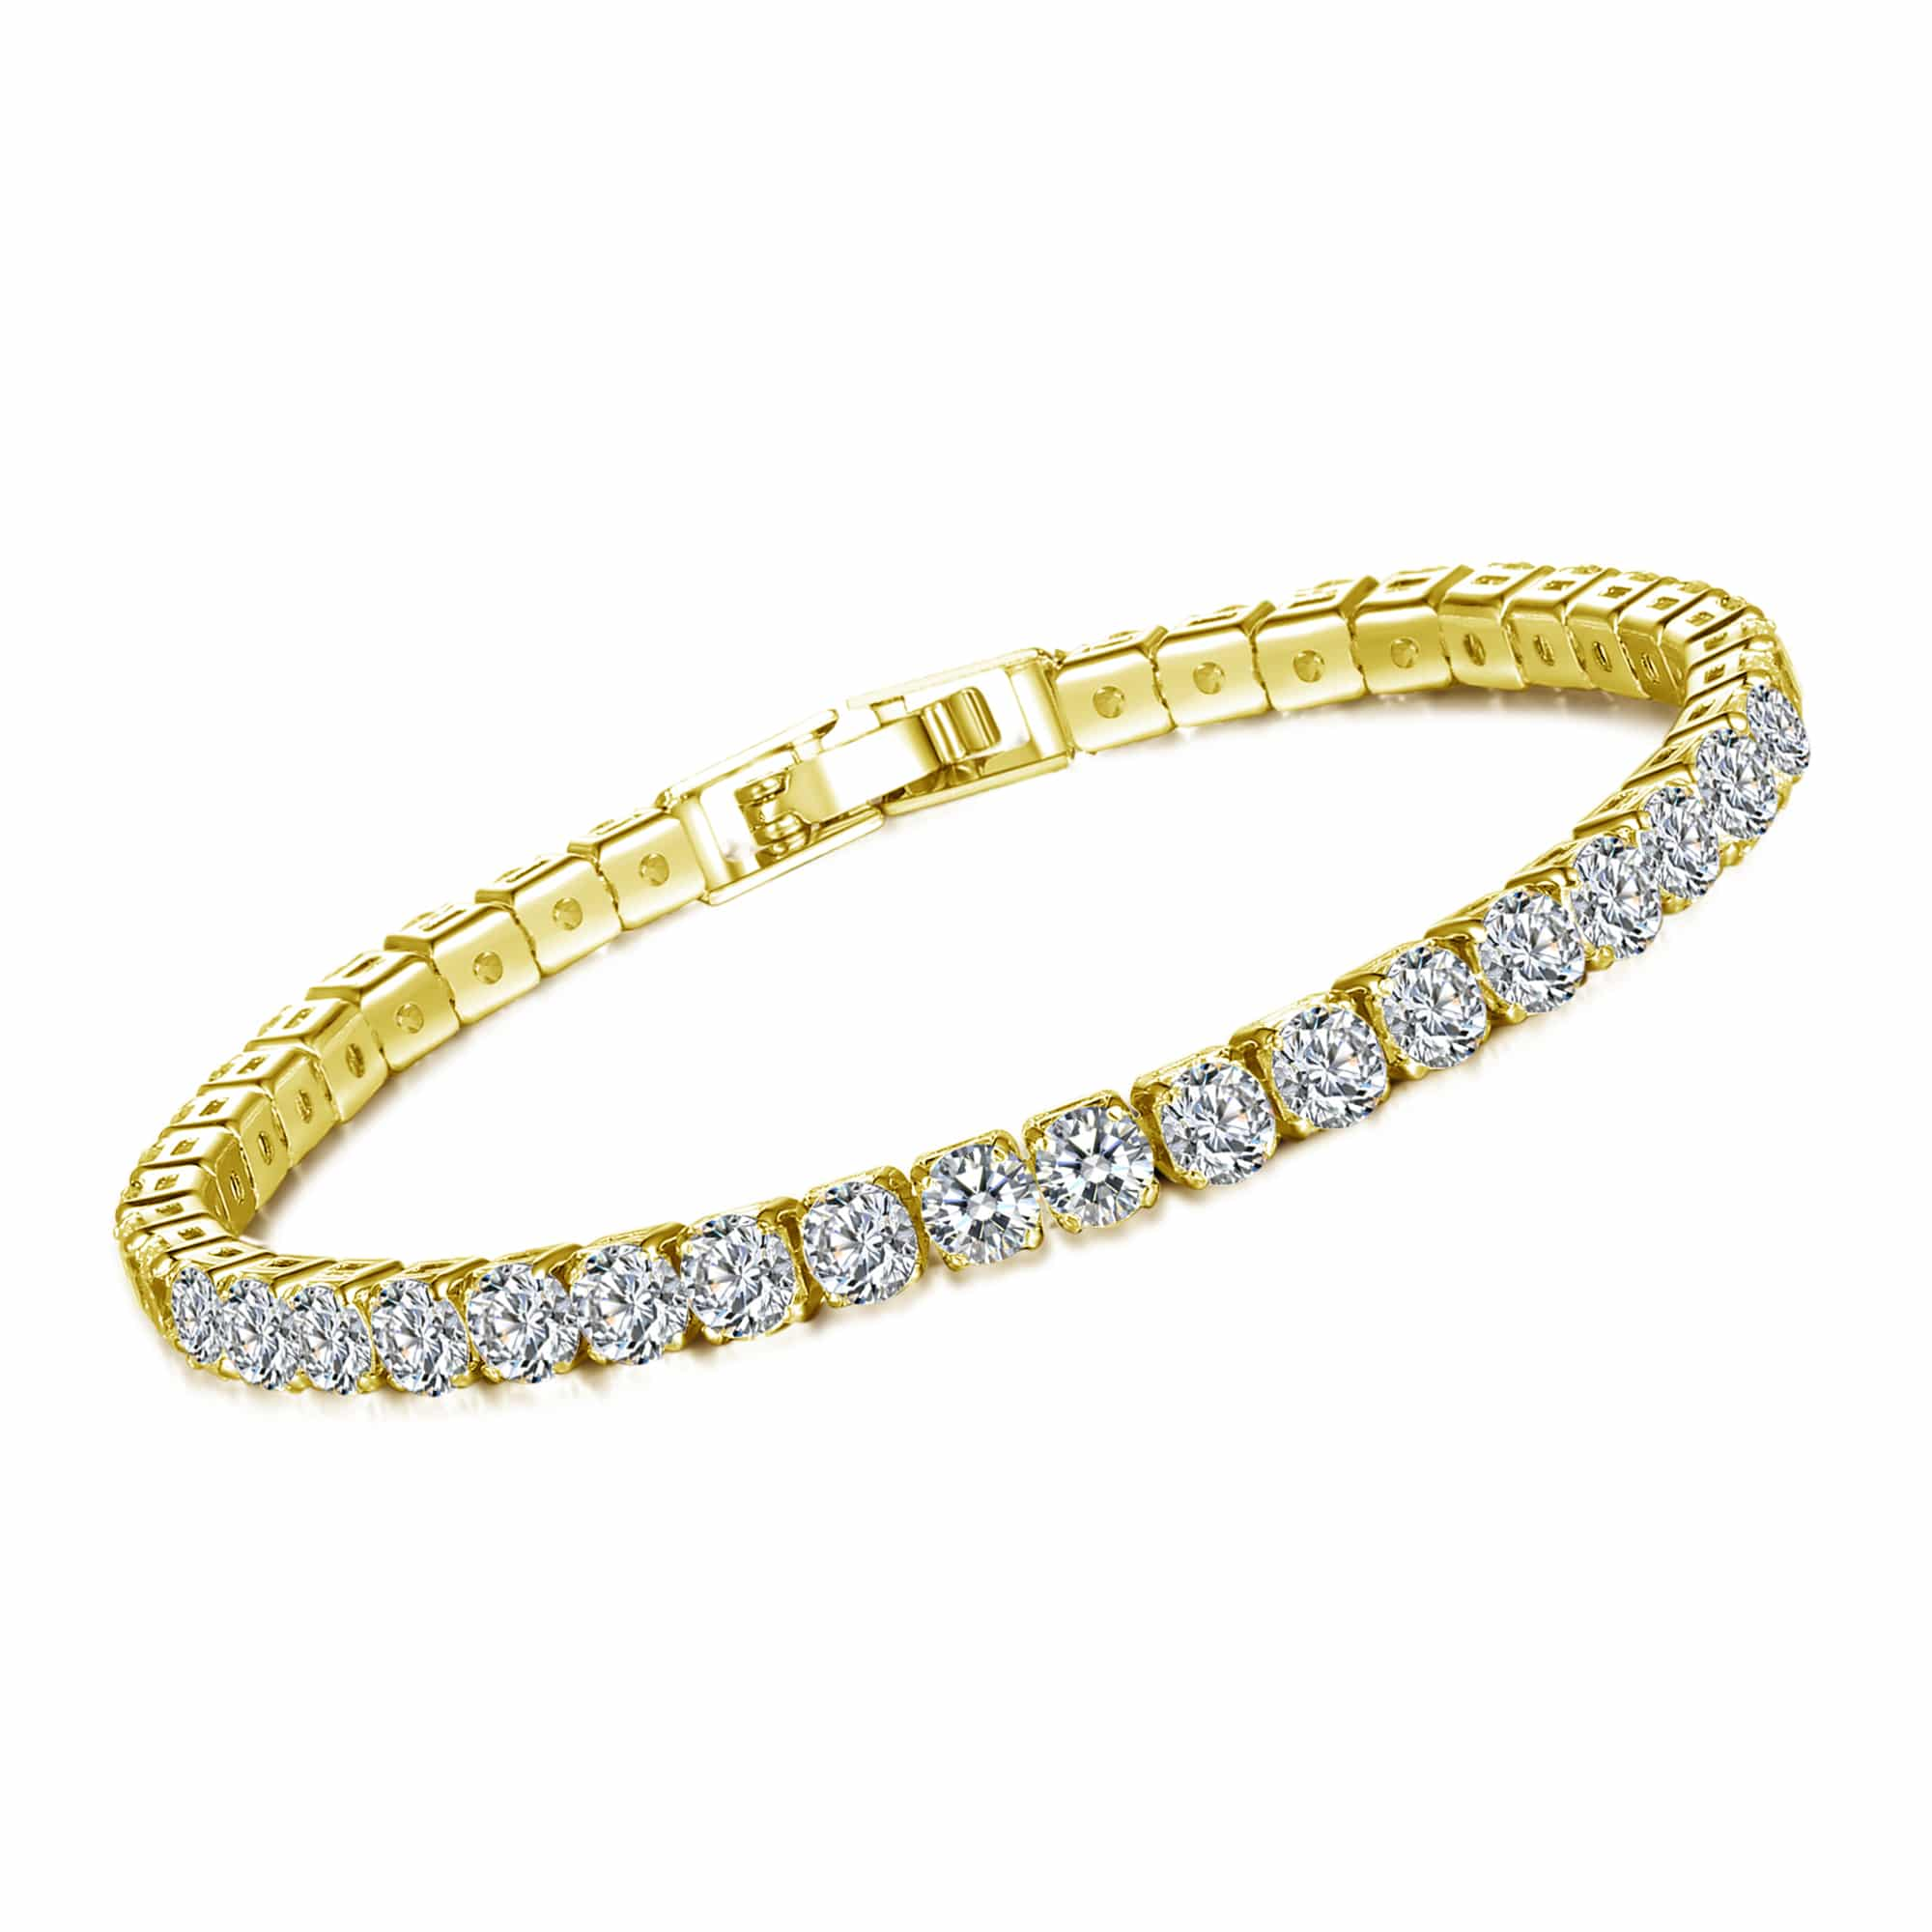 and bracelet priv omi product prive jewelry pgi sapphire diamond resized platinum